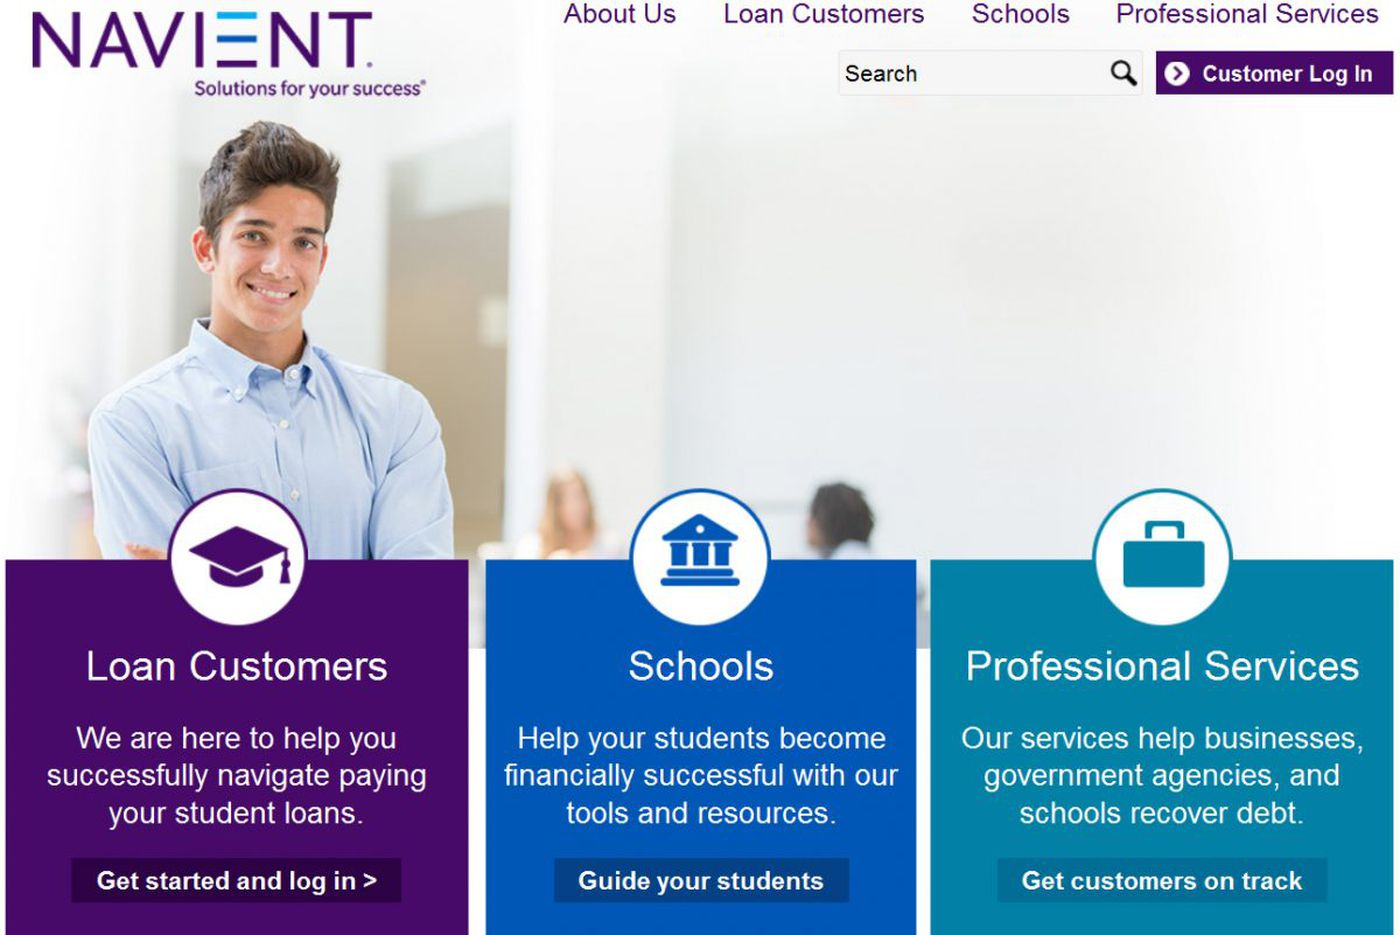 Will students and co-signer parents get money back as Pa. AG sues Navient?